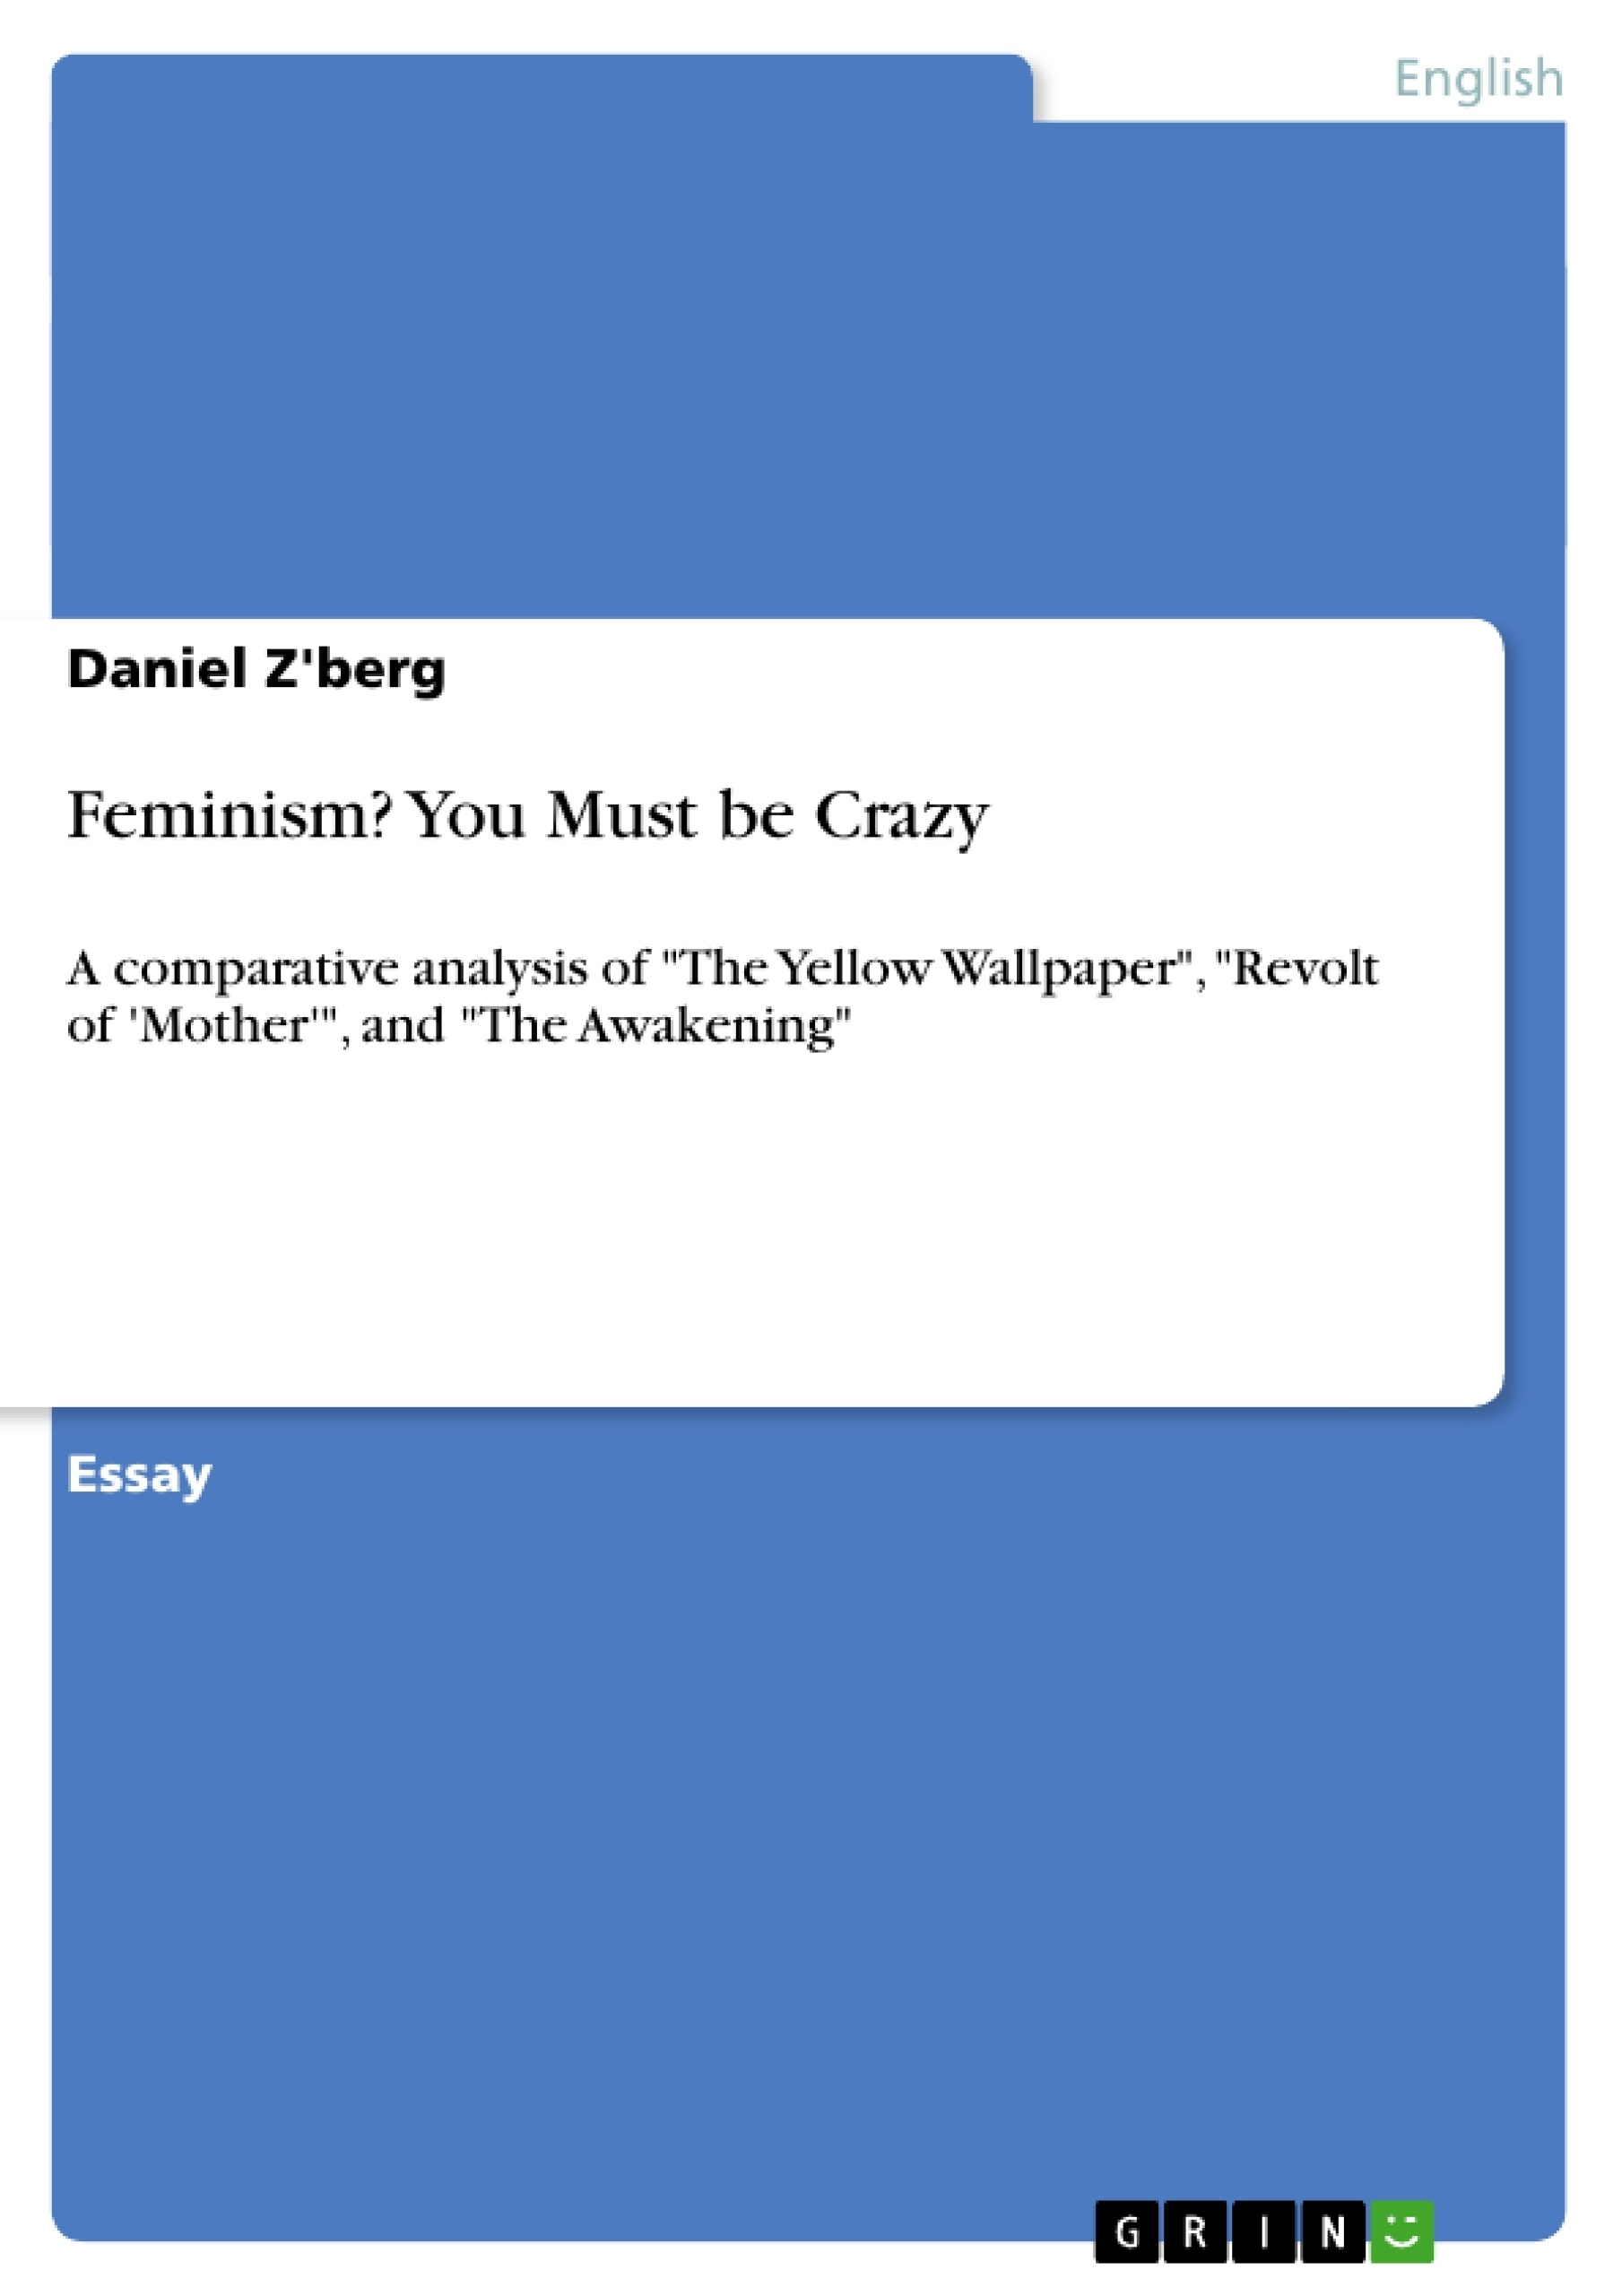 Title: Feminism? You Must be Crazy